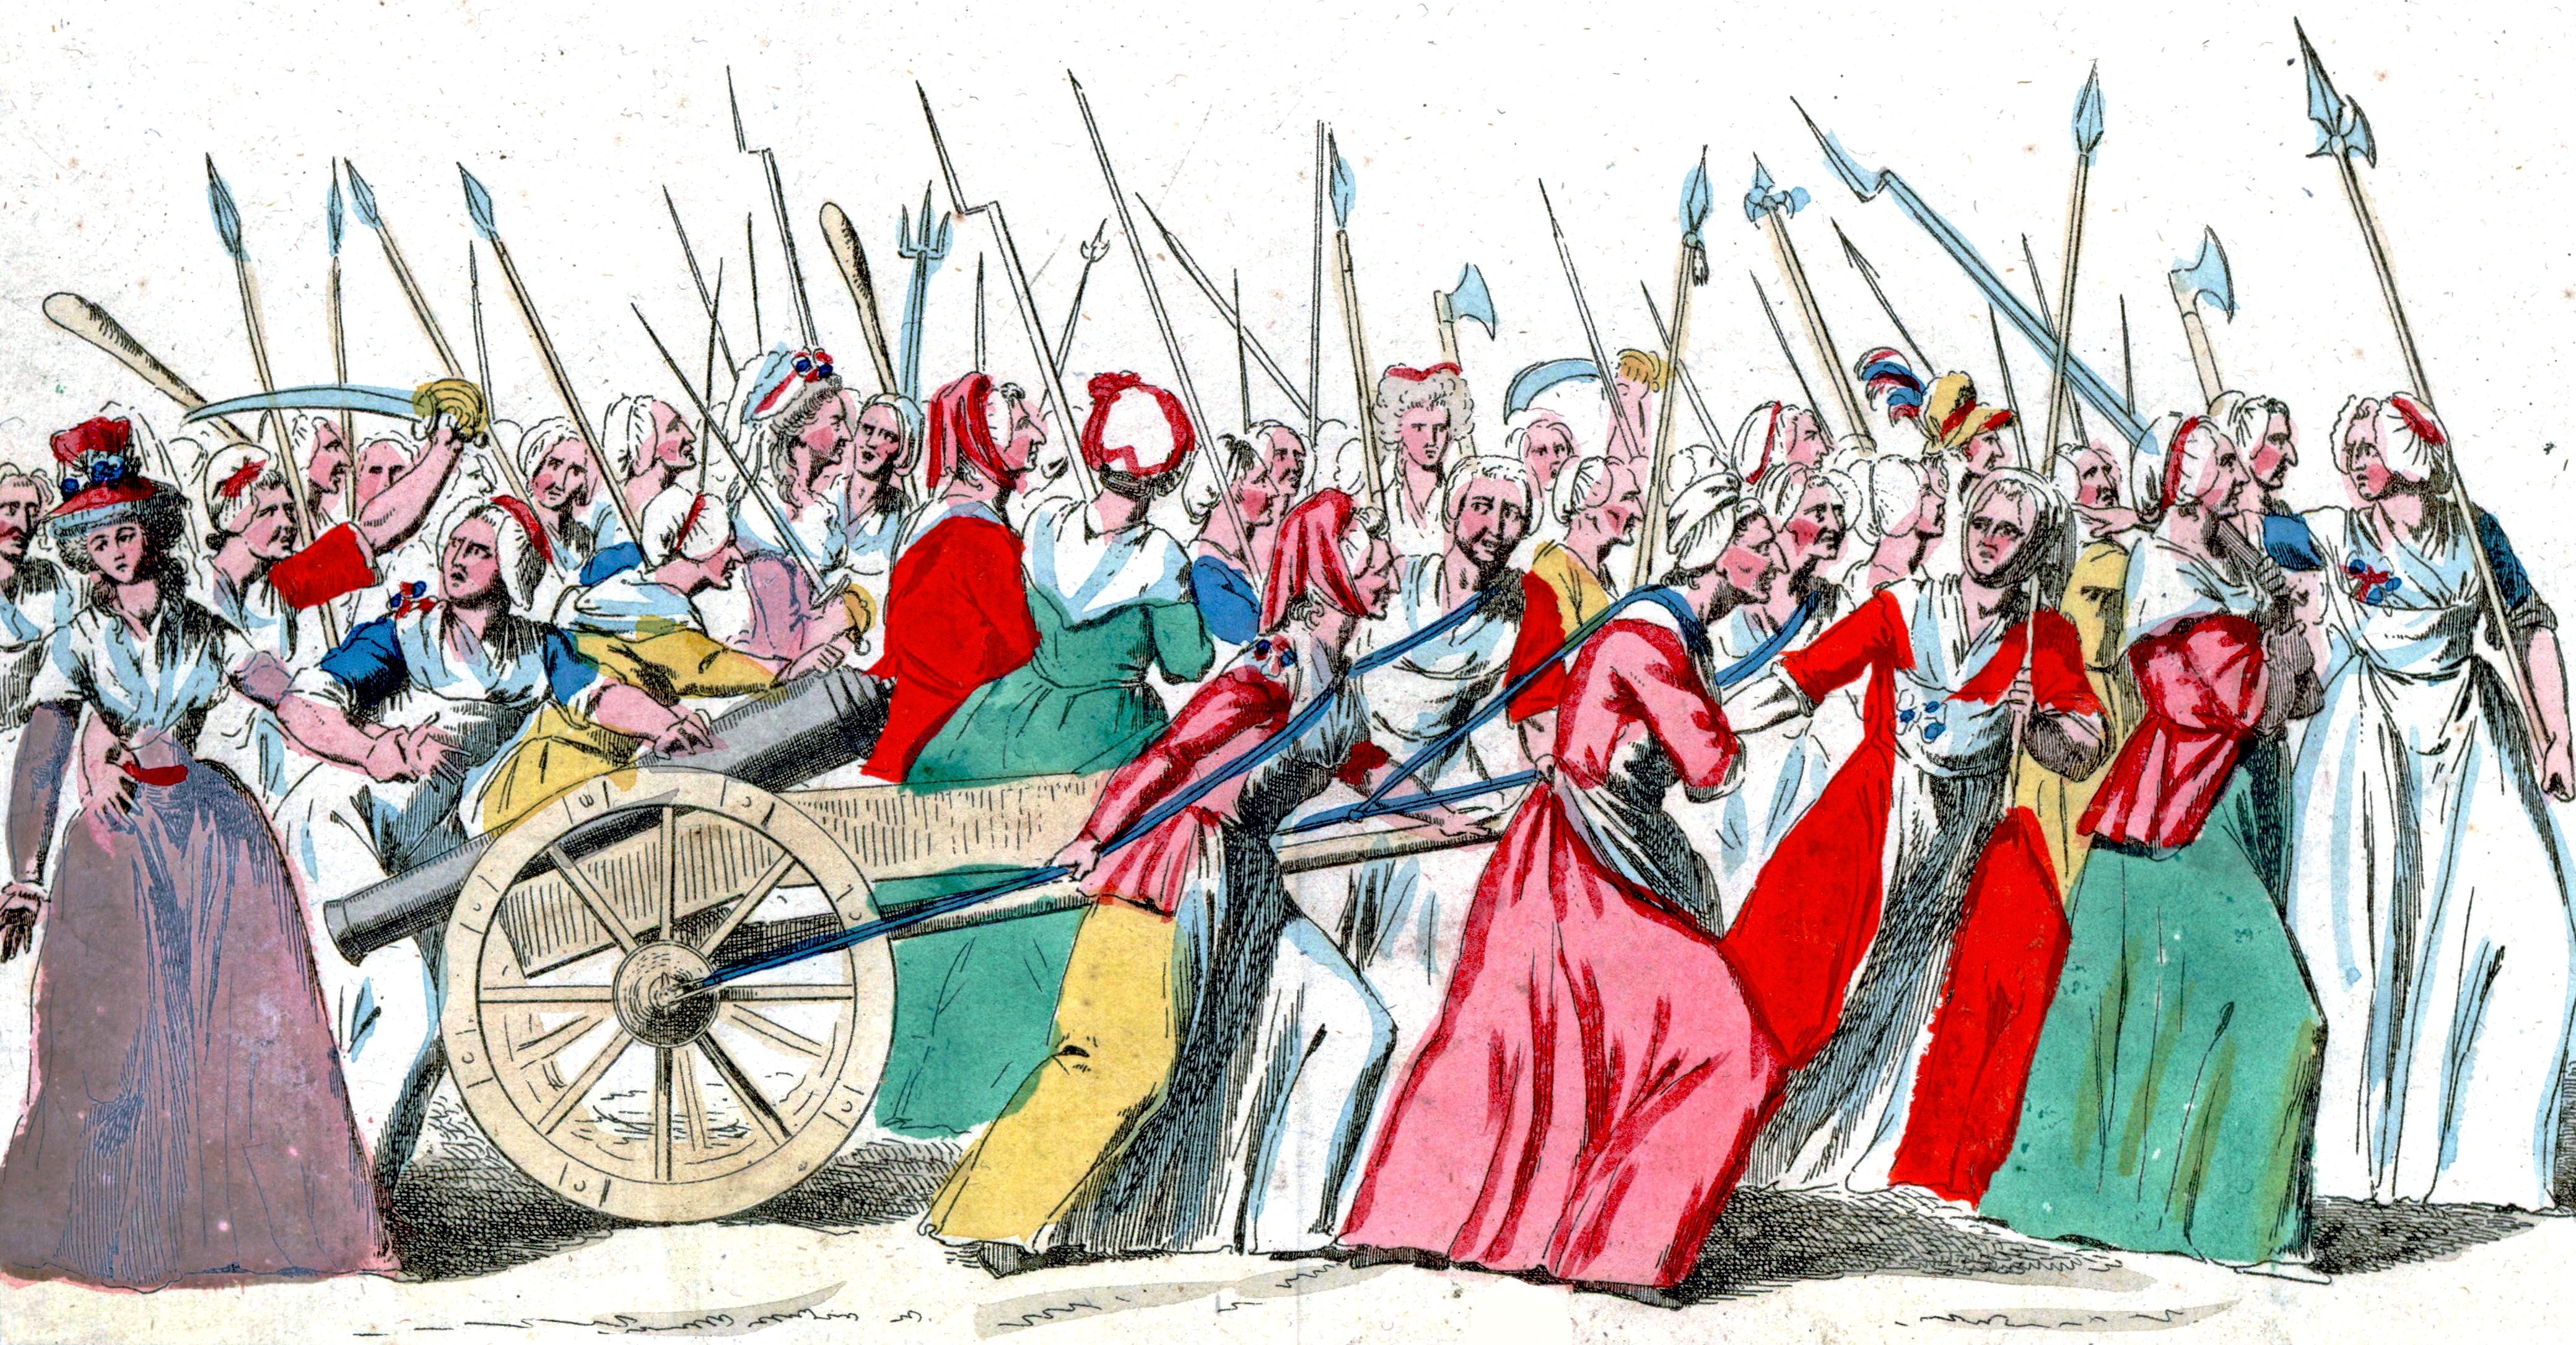 essay france revolution 1848 The revolution of 1848 encompassed many of the european countries the revolutions sweeping across europe included germany, italy, and france, excluding russia and england.